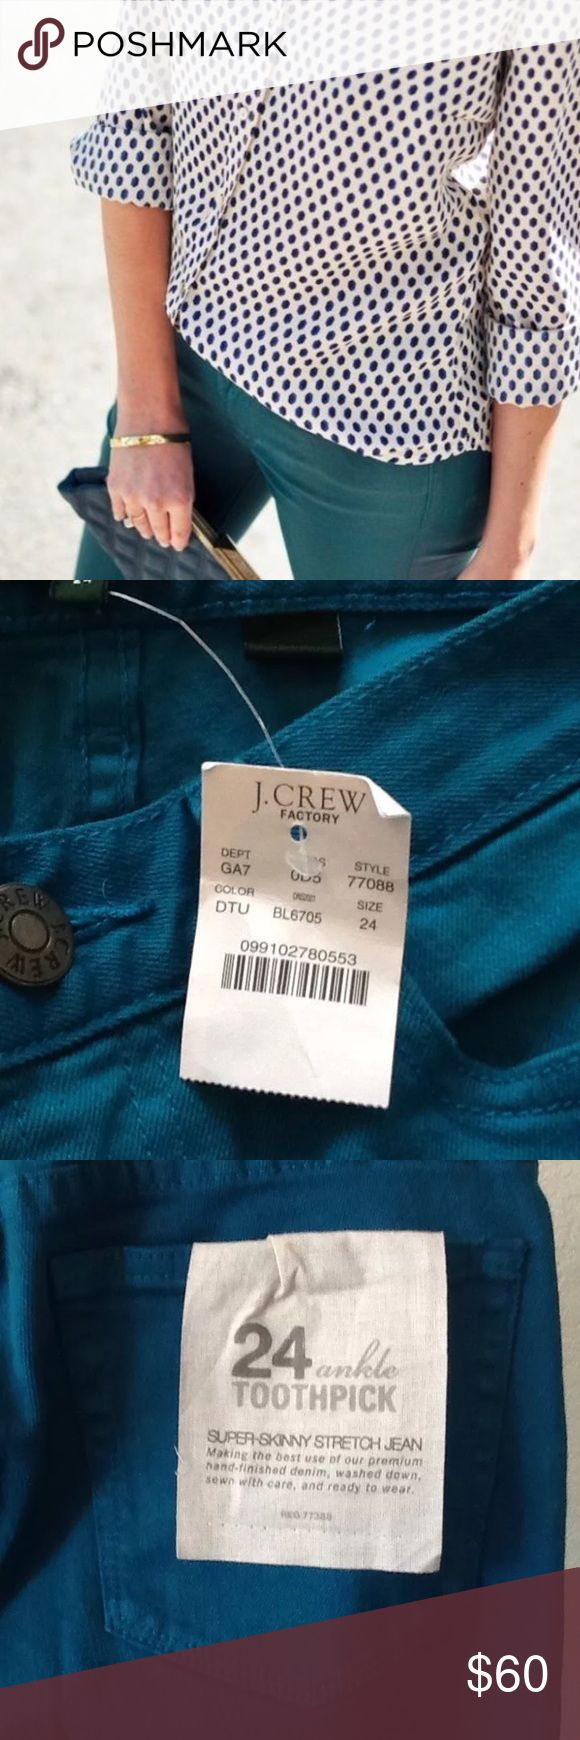 """nwt//j. crew factory•teal toothpick ankle skinnies 🛍: j. crew factory ▫️super skinny stretch toothpick ankle jean - sold out online! ▫️garment dyed teal color; color code on tag is DTU - color truest in last photo ▫️gorgeous spring color ▫️size: 24 ▫️measurements:                  waist laying flat: 13.5""""                 inseam: 27""""                 rise: 7"""" ▫️condition: new with tags •please see all pics, read description, and ask questions before purchasing  •no trades• J. Crew Factory…"""